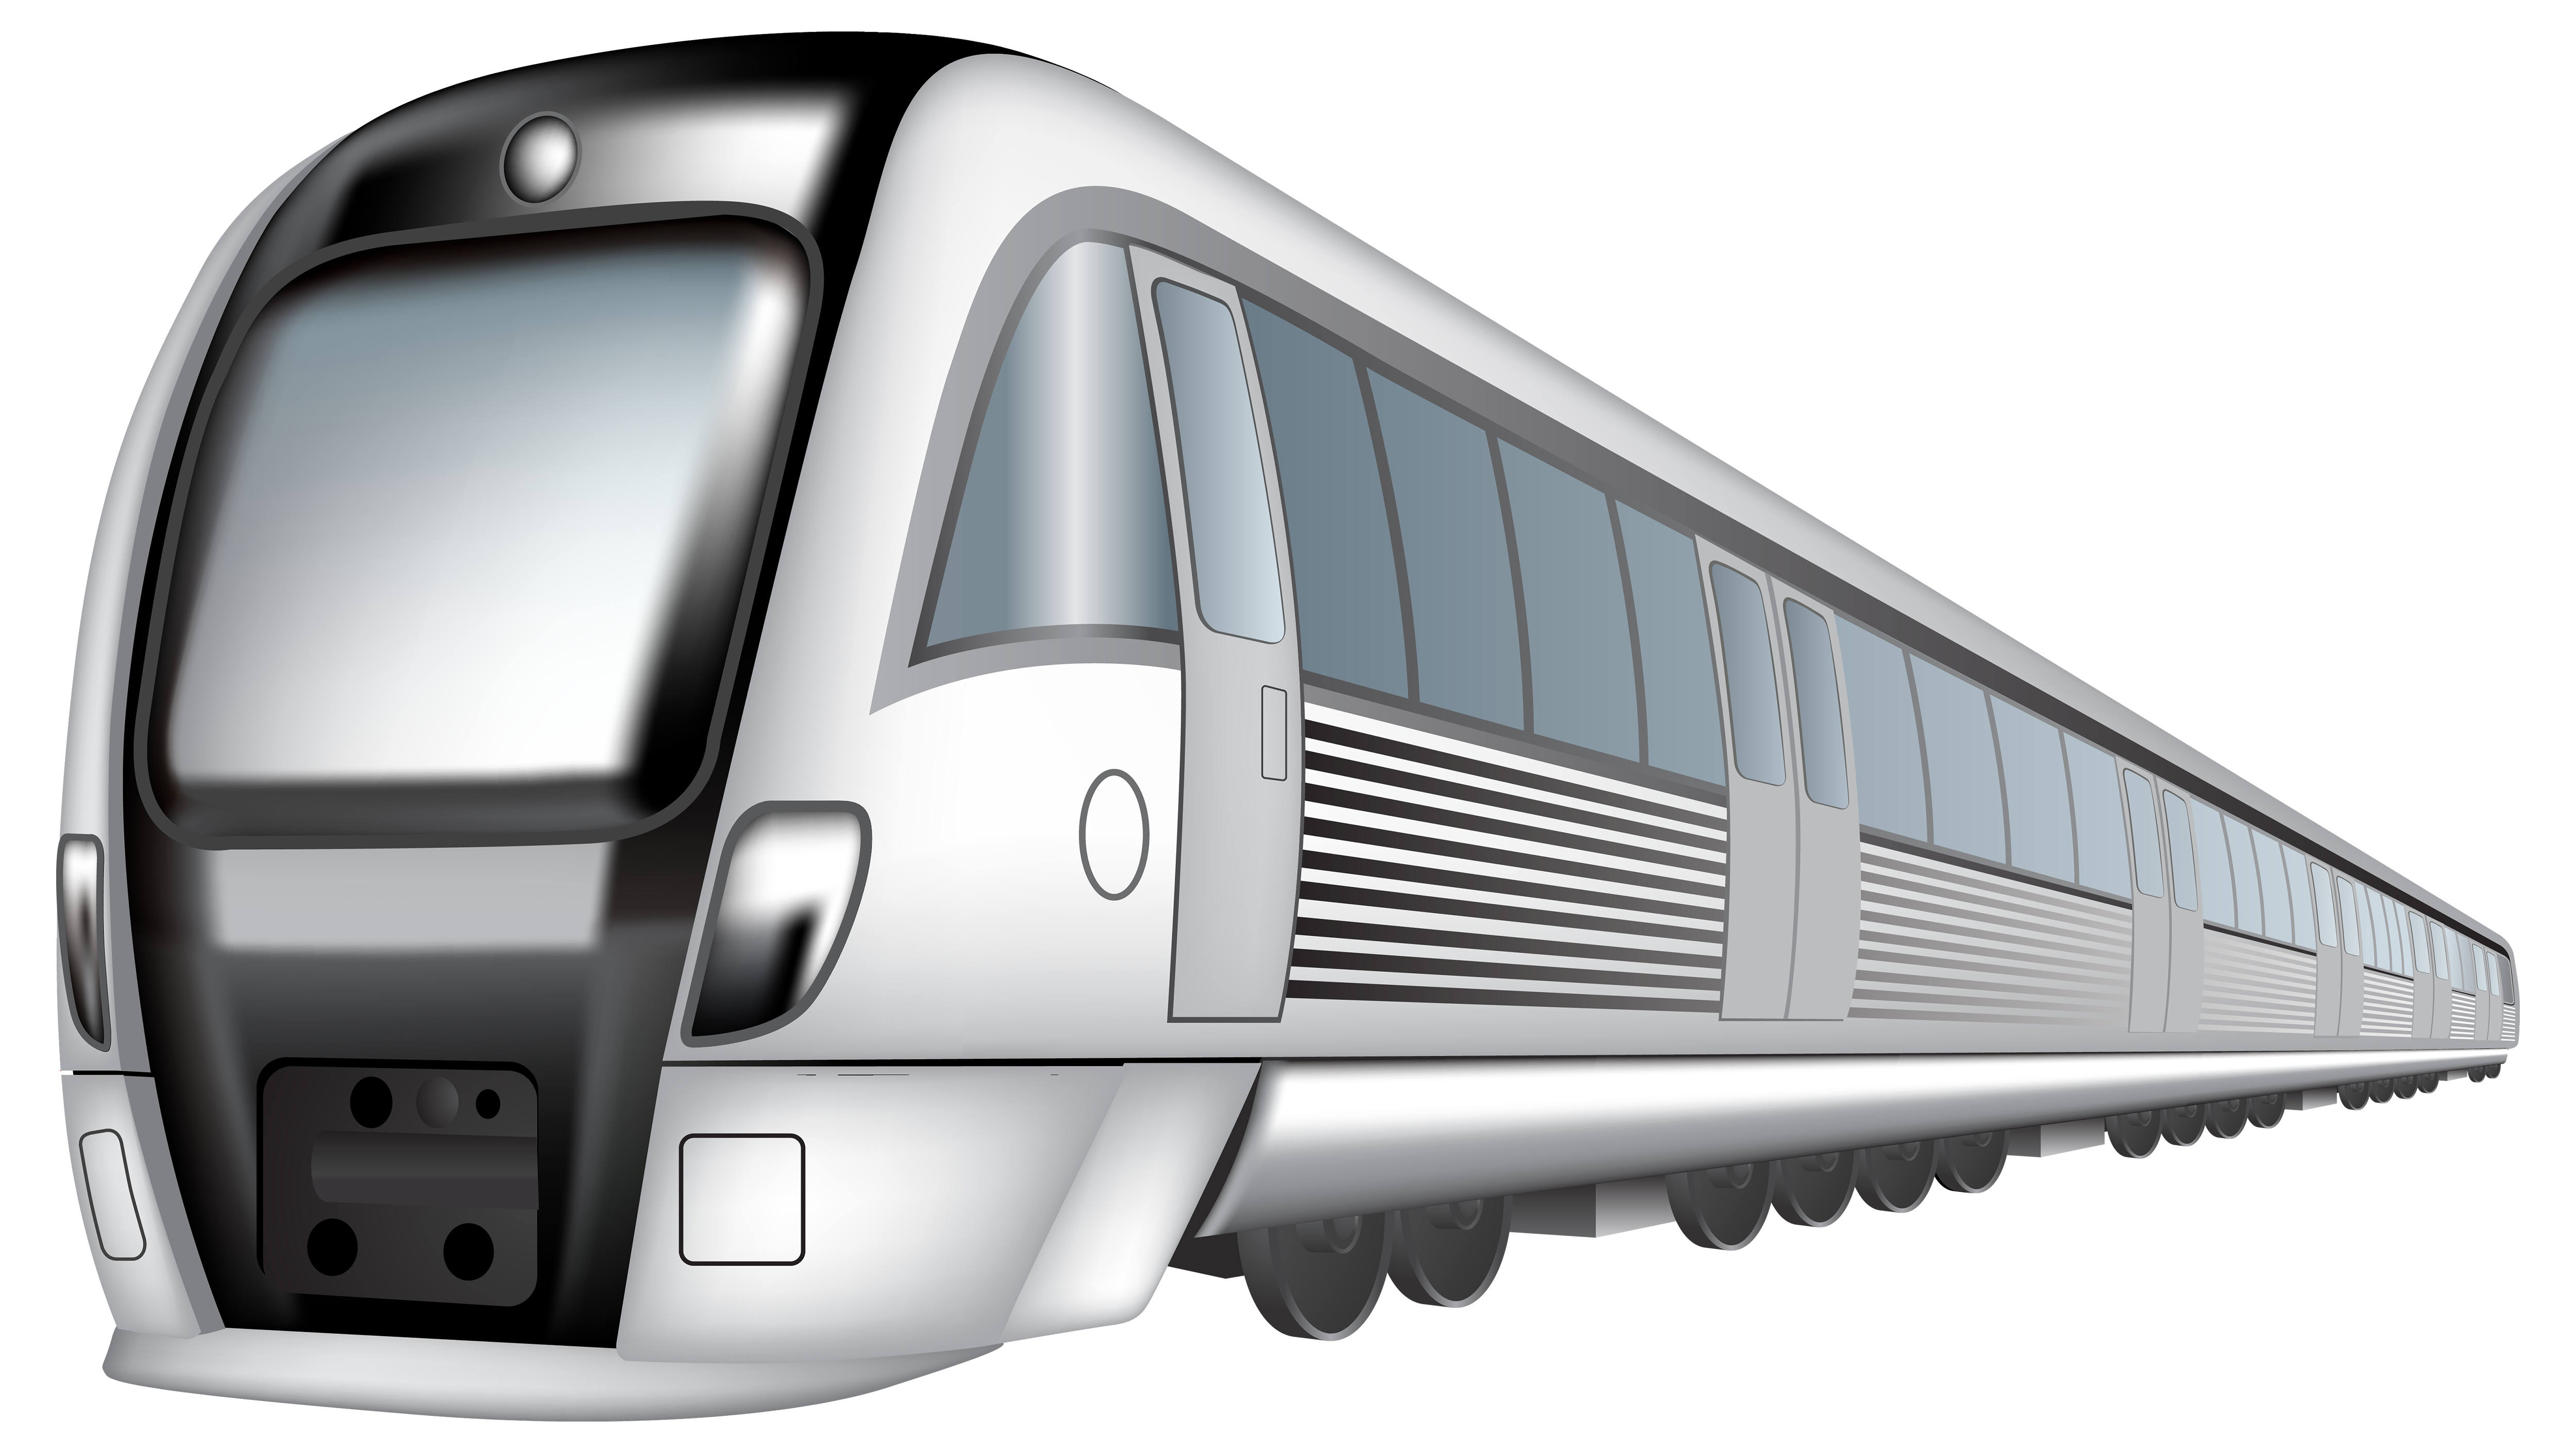 Transparent train metro. Fast png clipart best